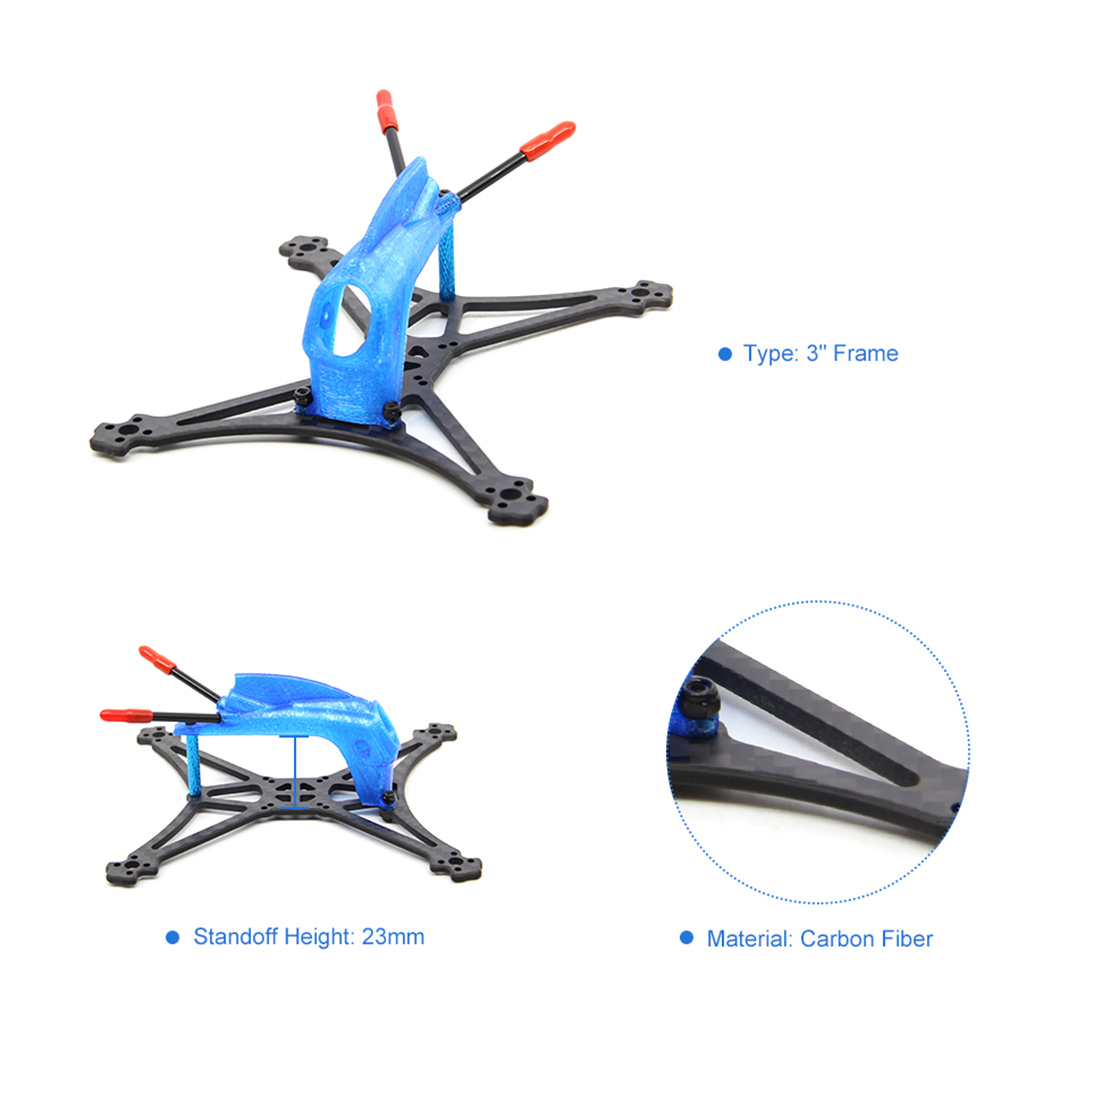 Image 5 - HGLRC Toothpick Parrot132 Carbon Fiber Frame Kit with 3D Print TPU Canopy for RC Quadcopter FPV Racing DroneParts & Accessories   -